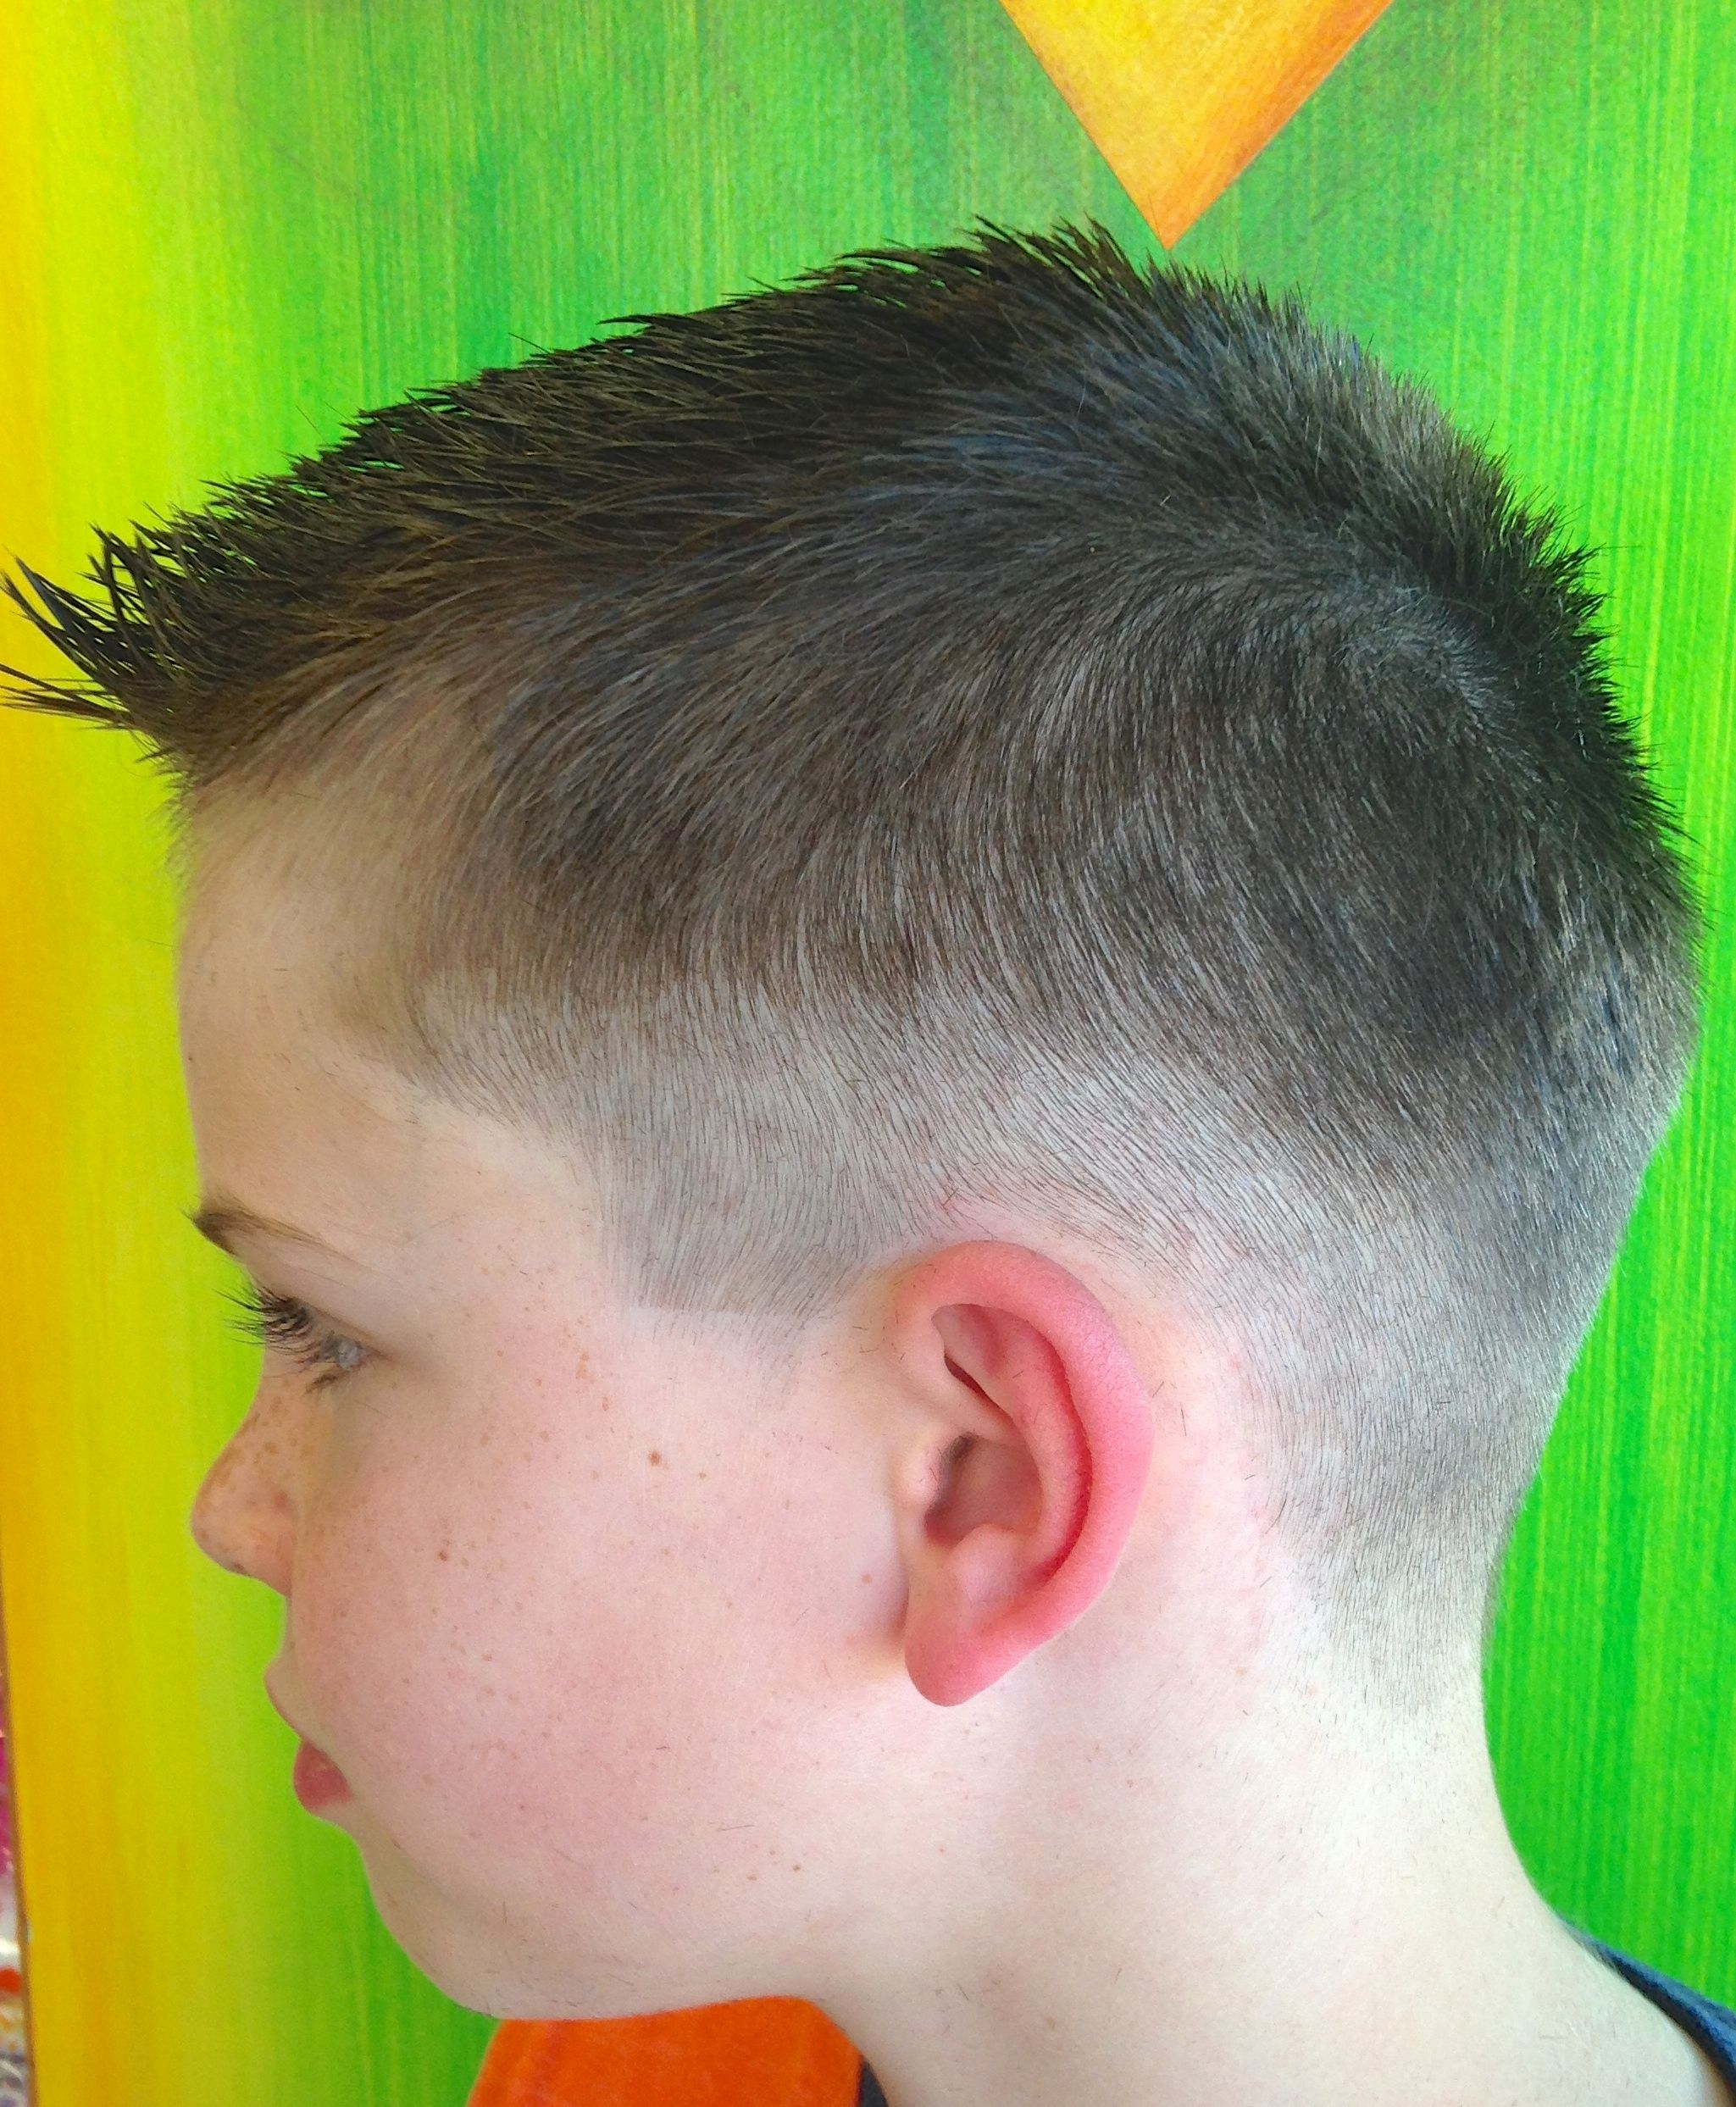 Boys Fade Haircuts: Little Boys Fade Haircuts - Google Search